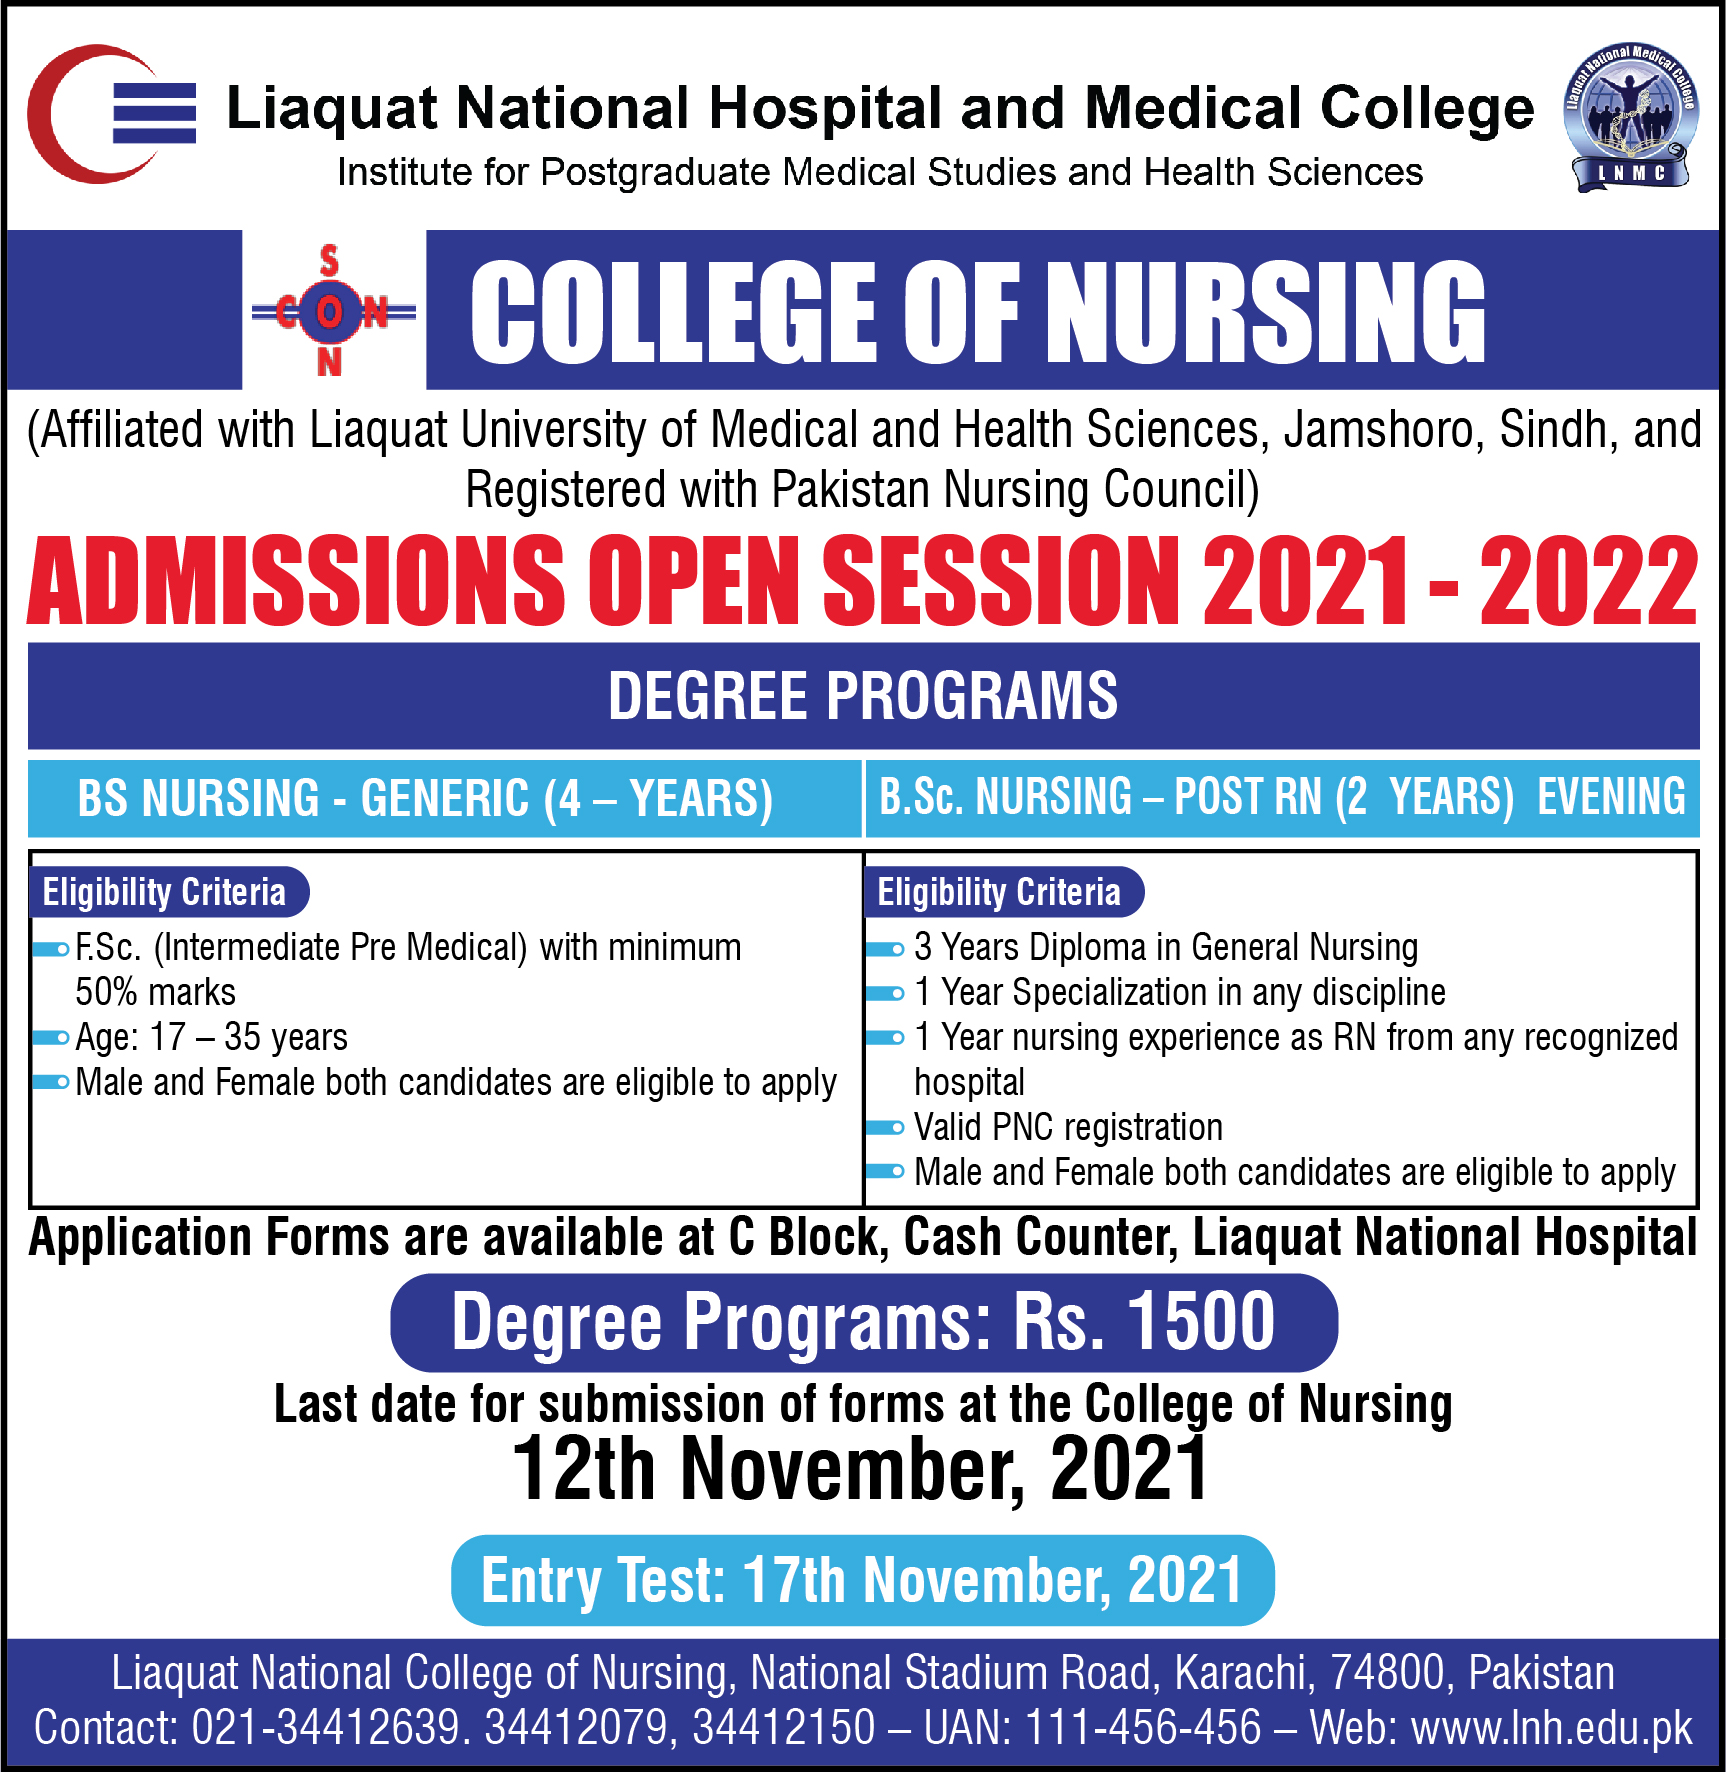 Admissions Open Session 2021 – 2022